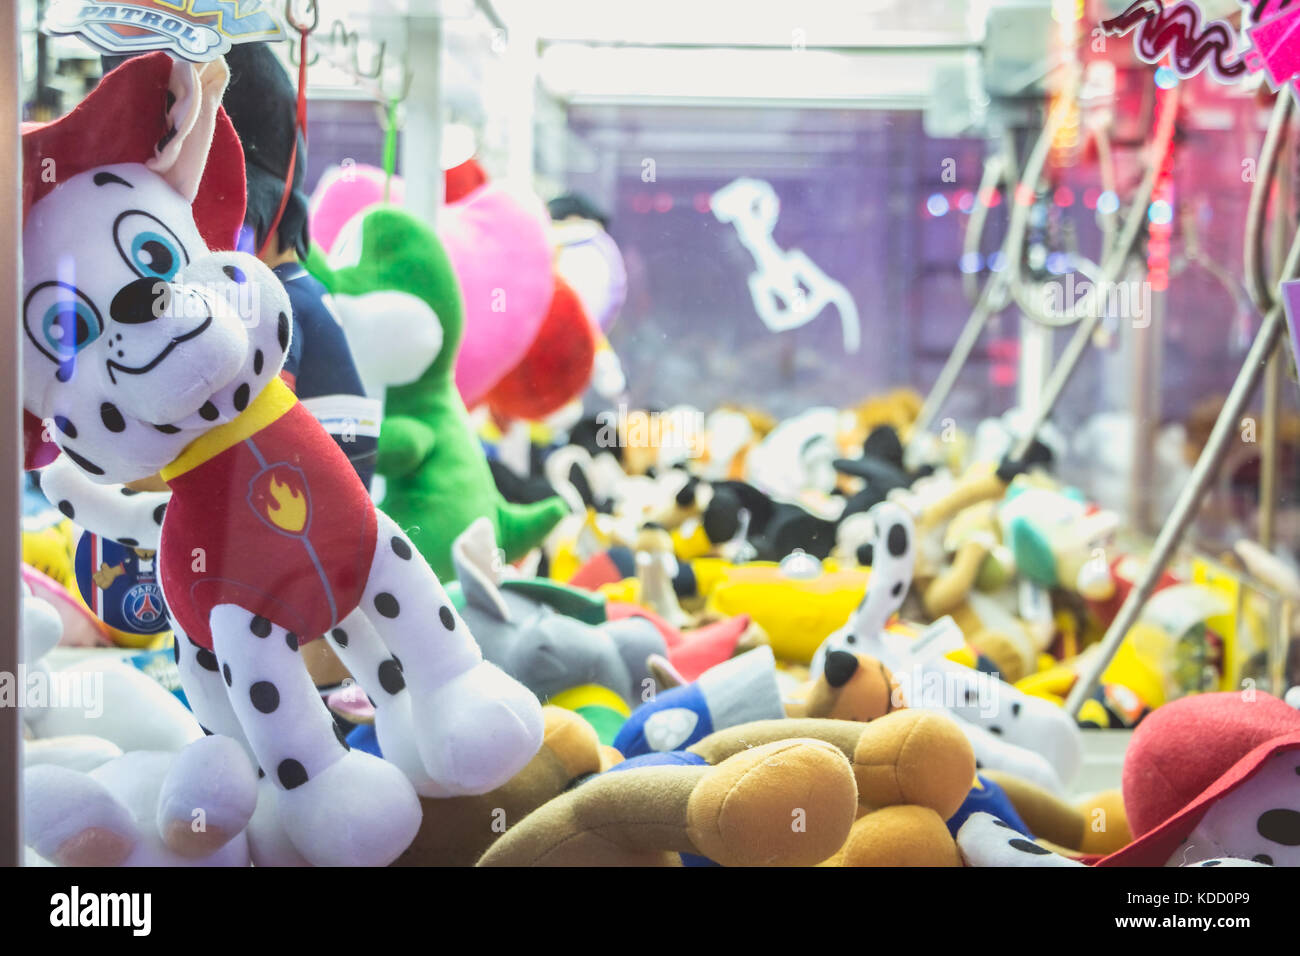 SABLES D OLONNE, FRANCE - November 27, 2016: In a traditional funfair a claw machine allows to win stuffed animals - Stock Image